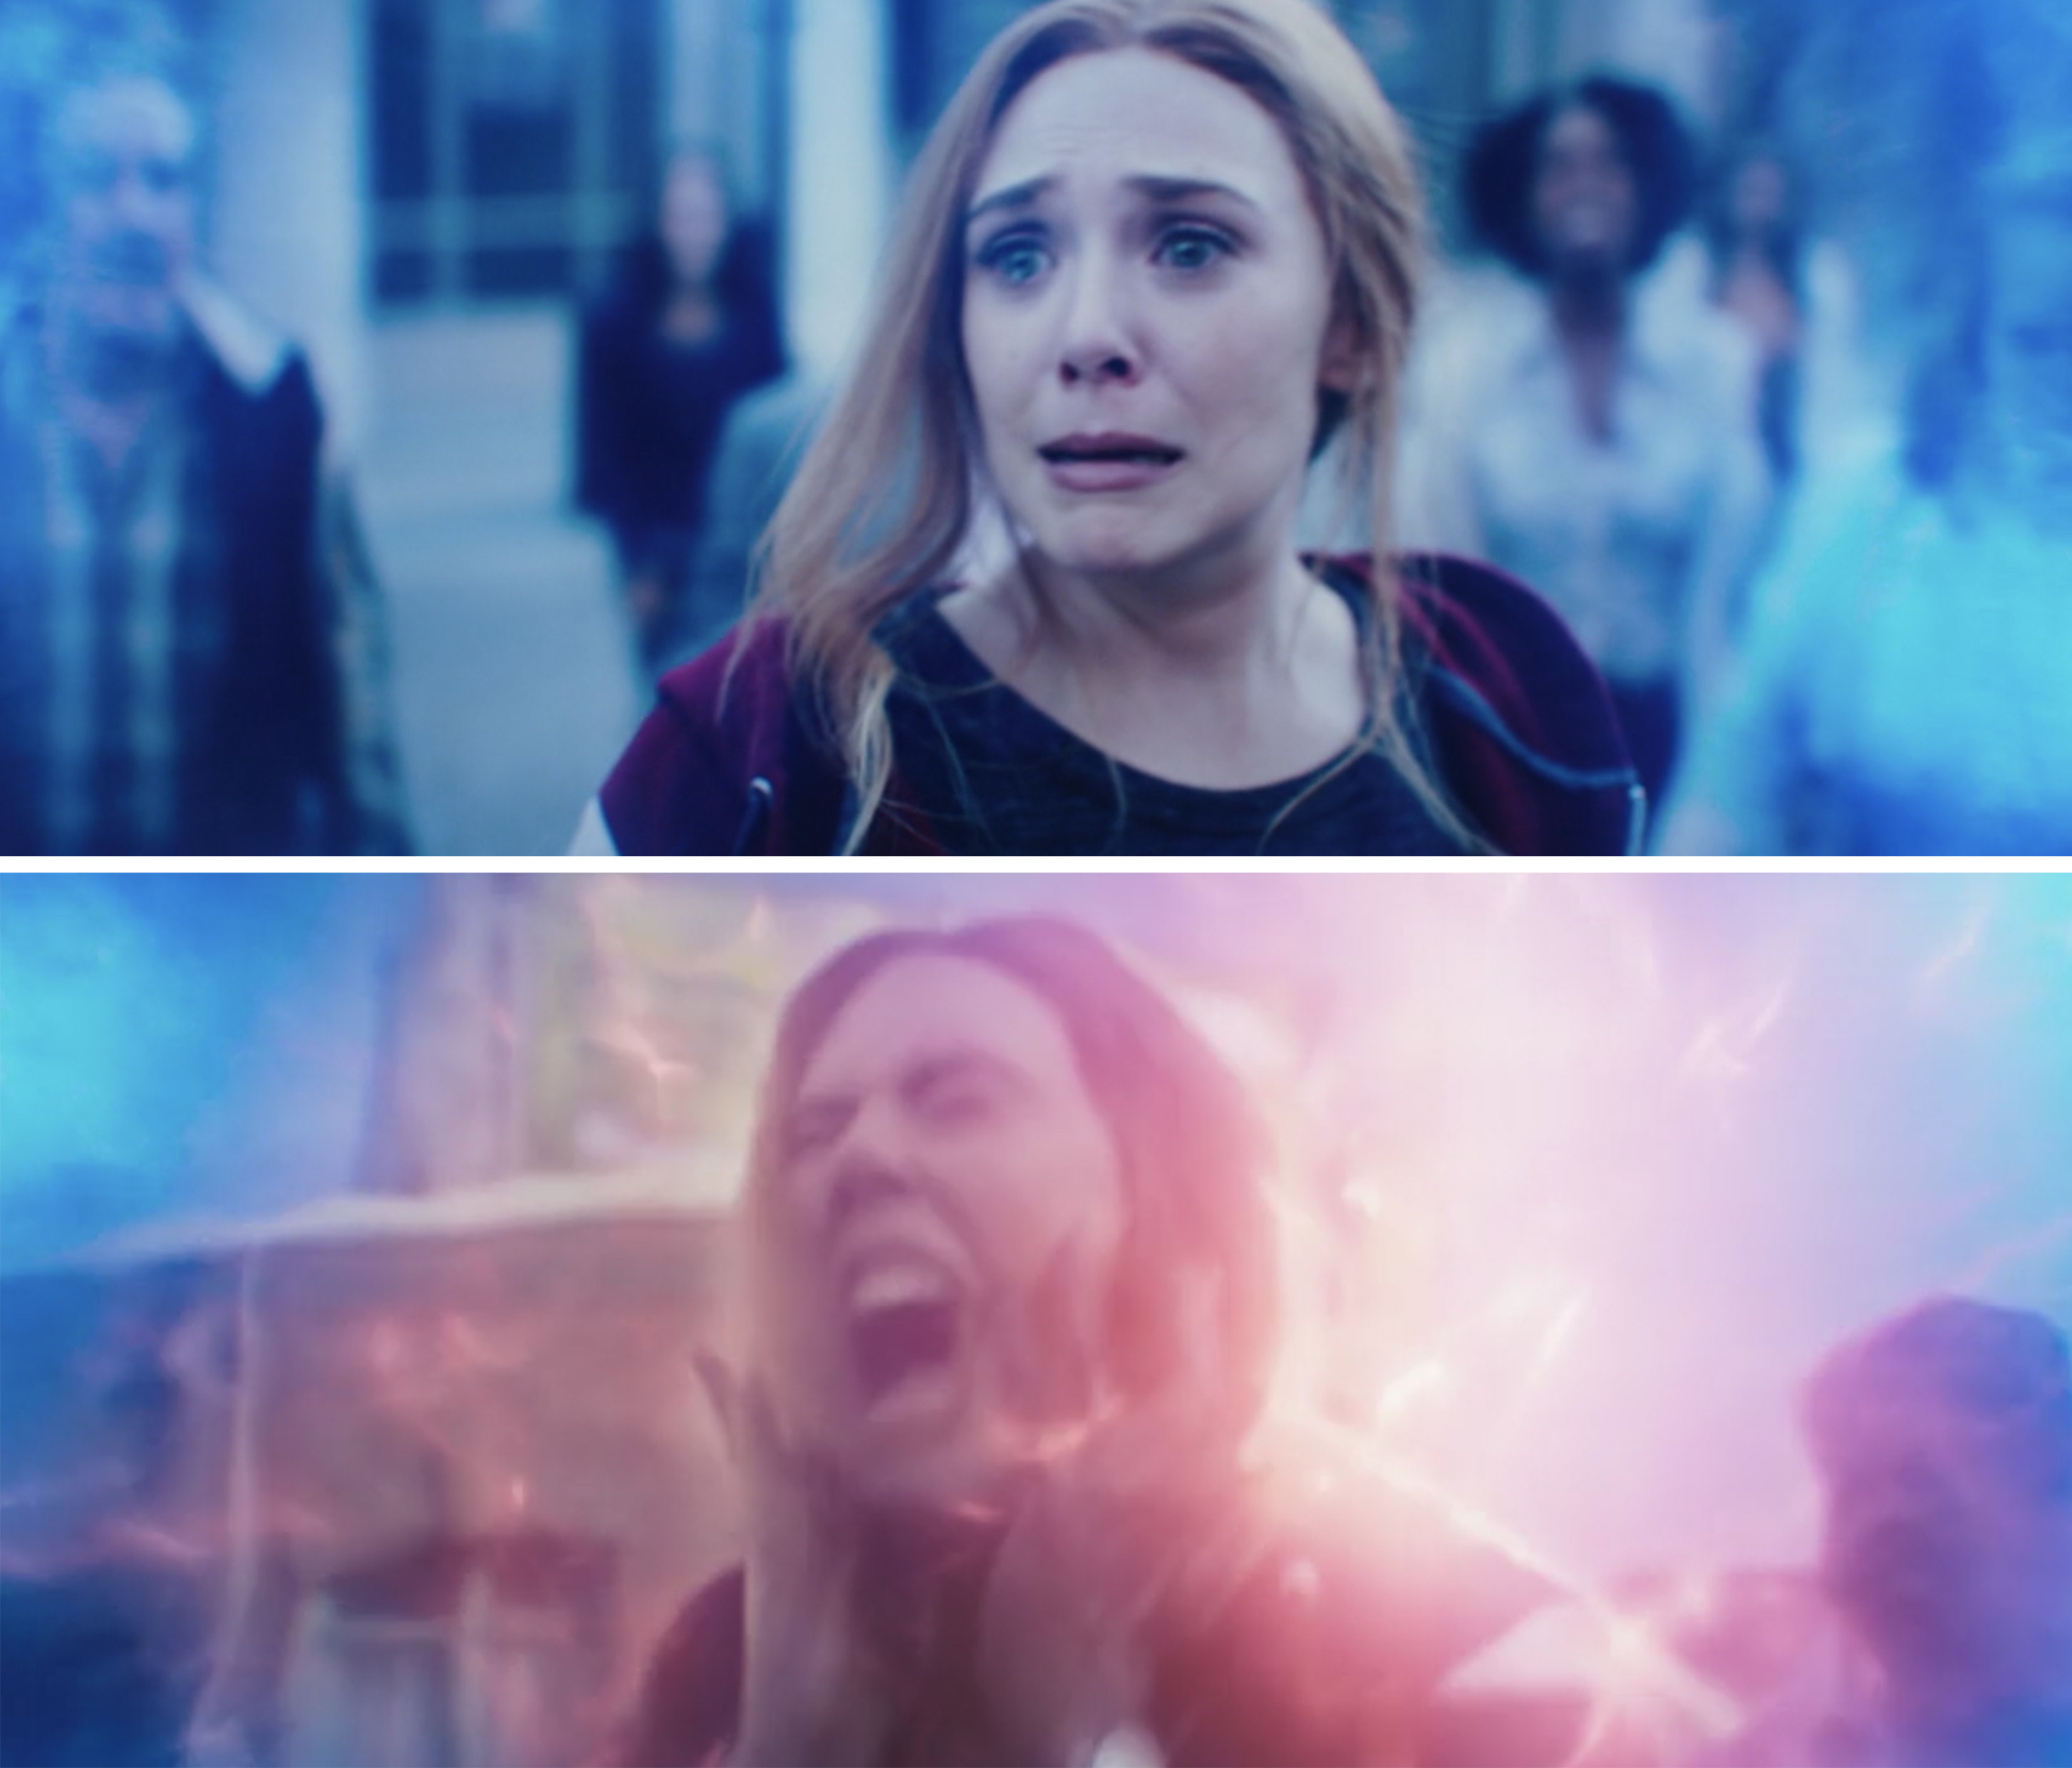 Wanda crying and screaming